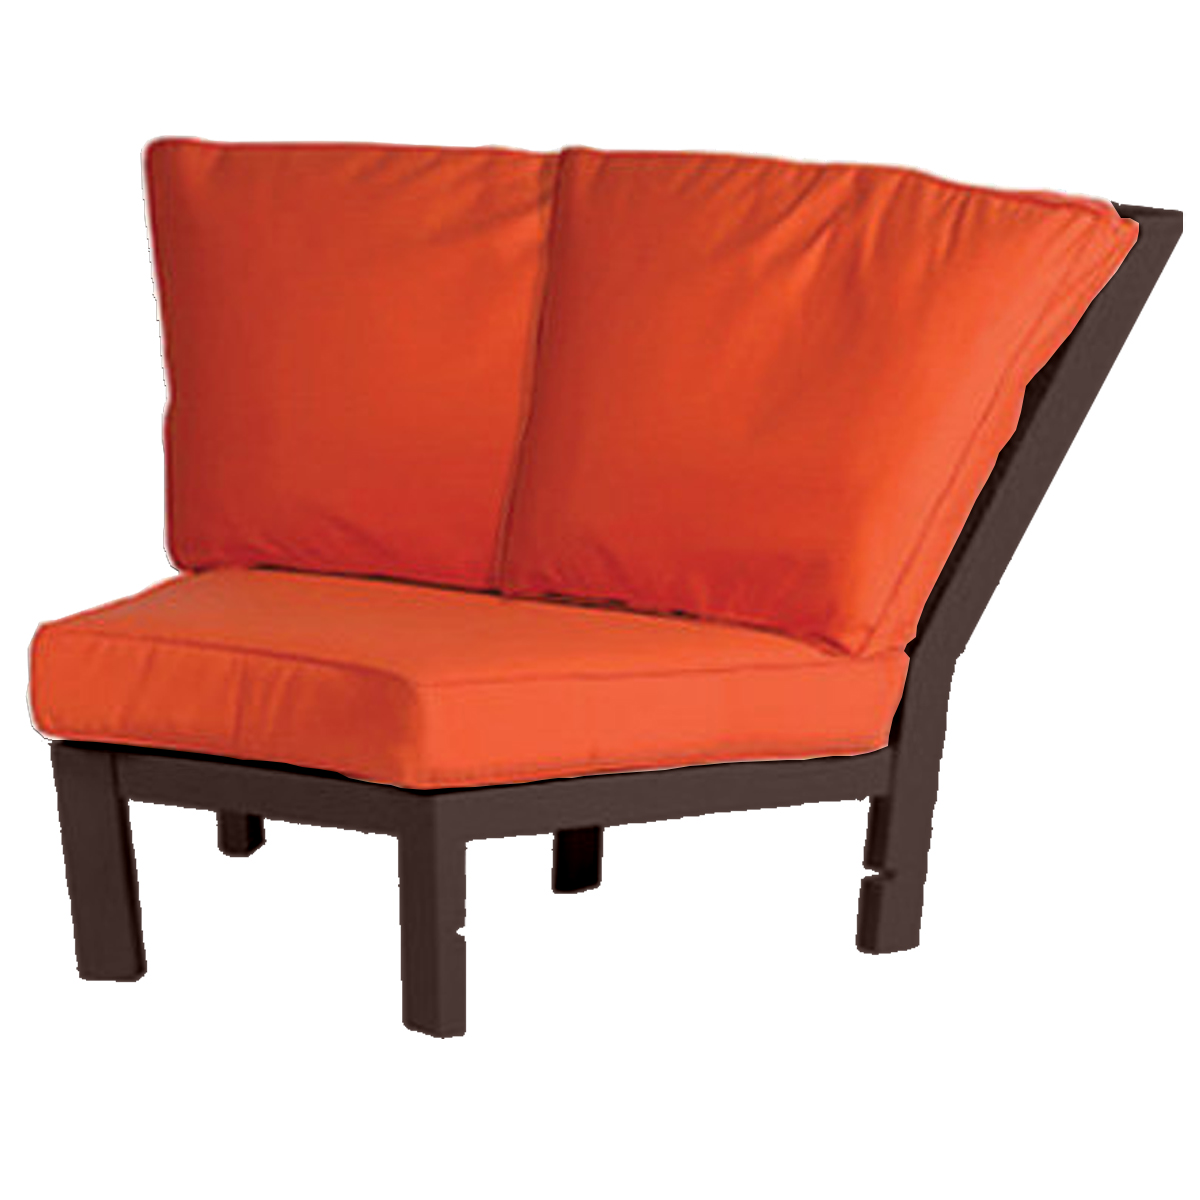 Sanibel Modular Deep Seating 90 Corner Lounge Chair